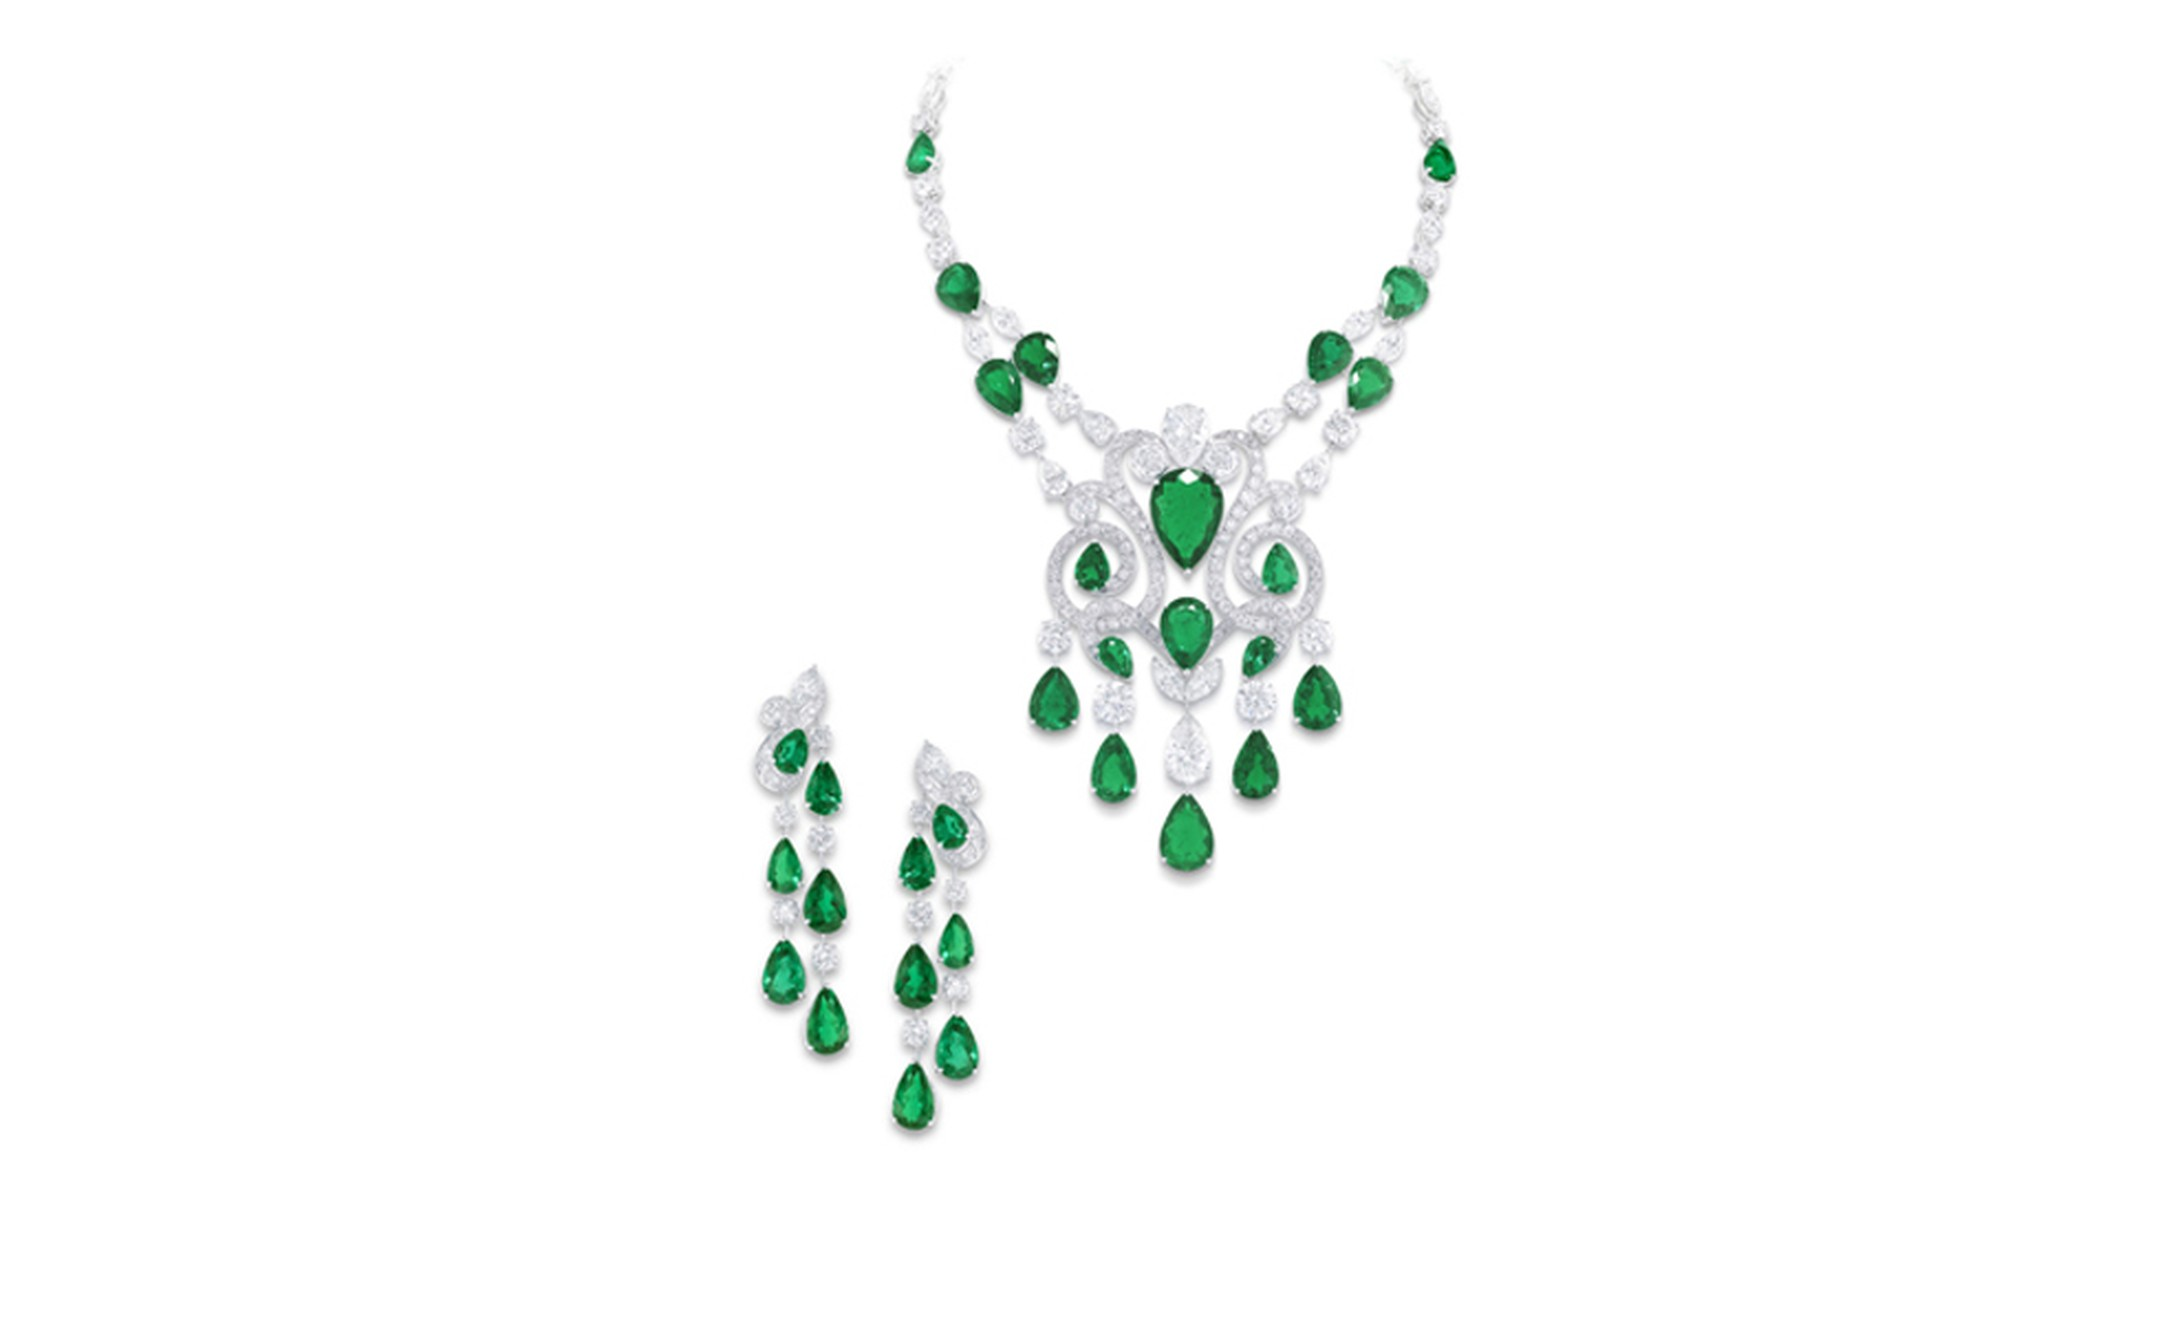 GRAFF. Emerald Scroll Necklace and Earrings. POA